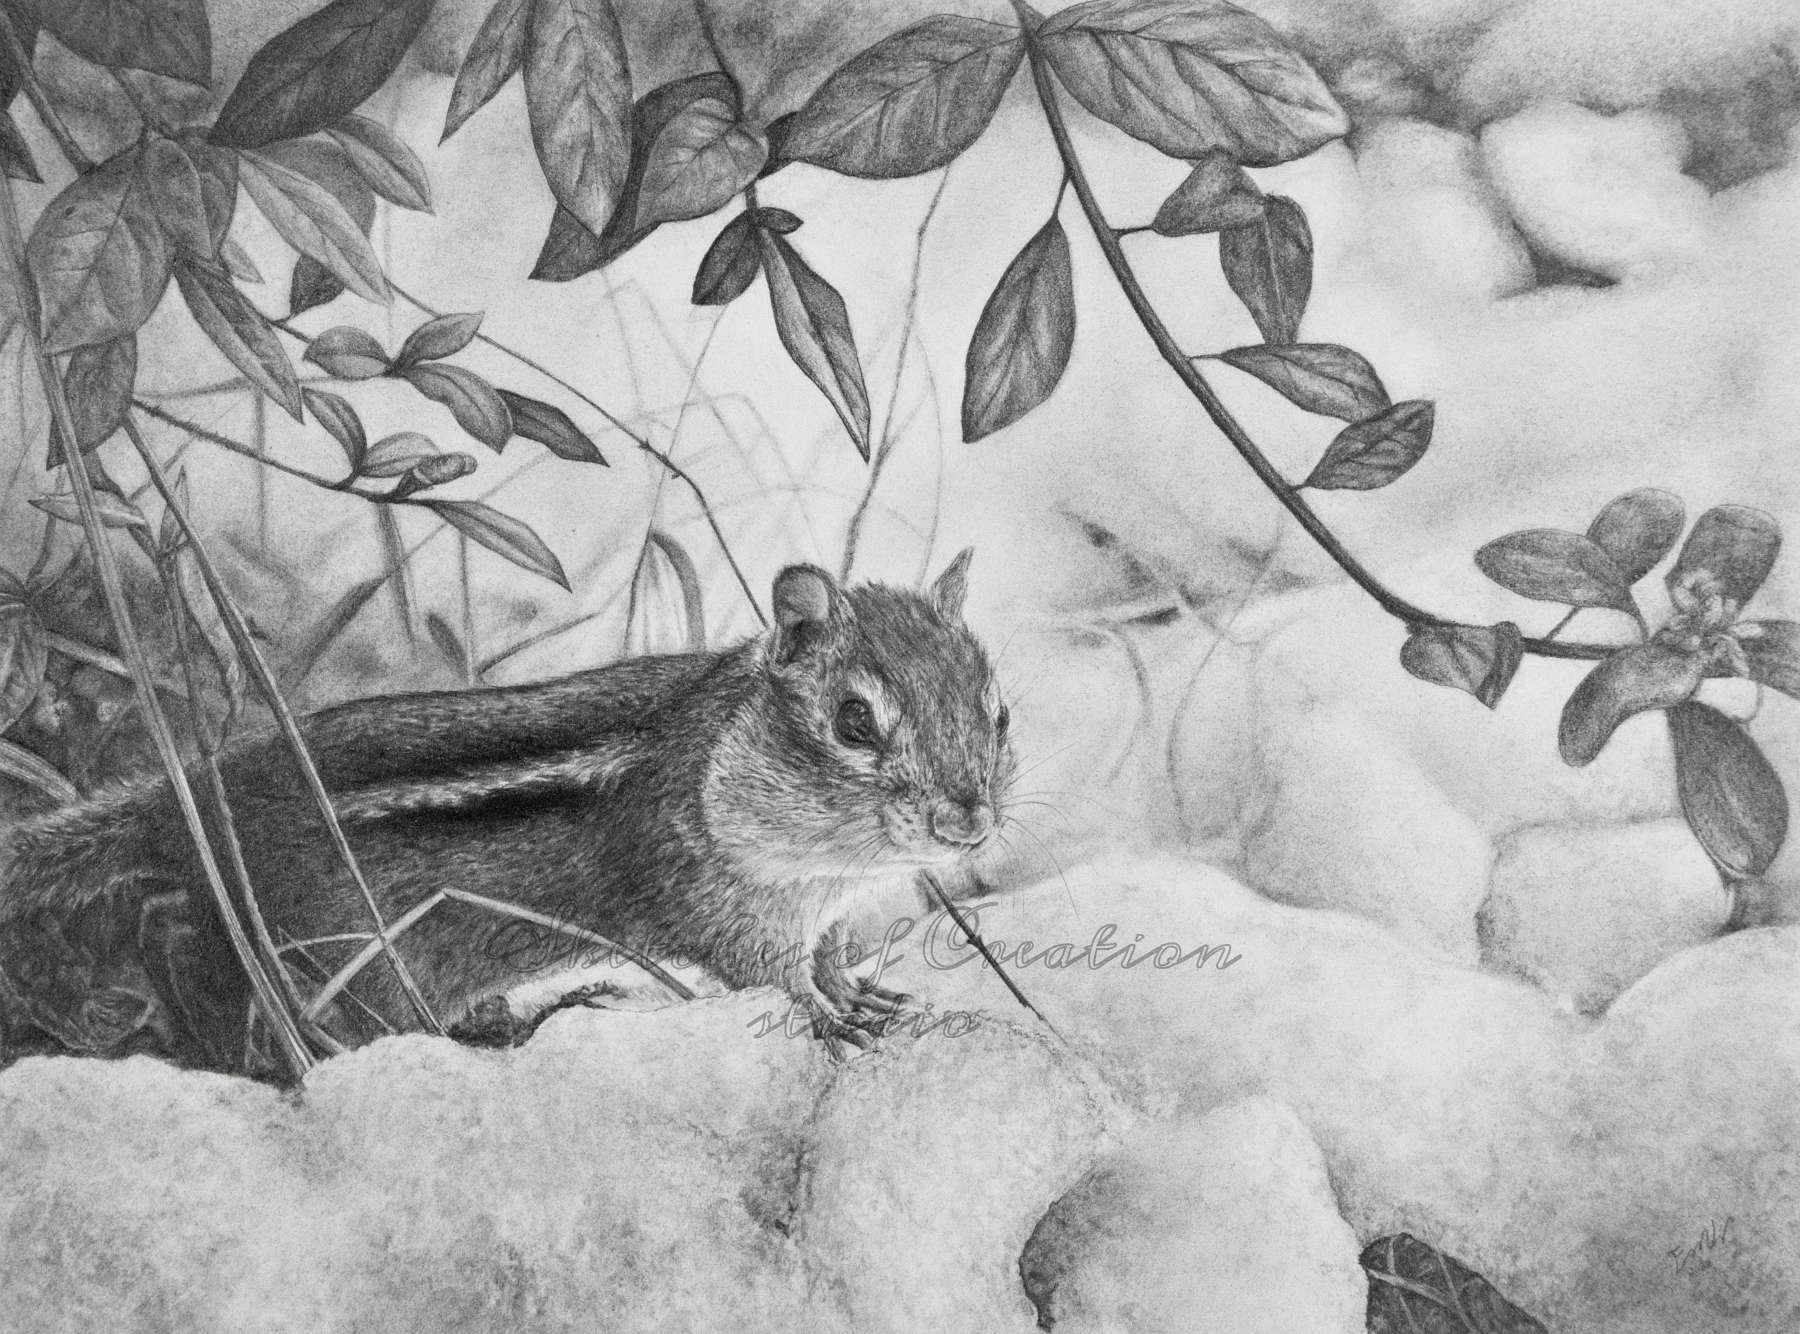 'Into the Snow' a drawing of a Chipmunk looking out from under a bush in the snow. 9x12 inches. Completed August 2020